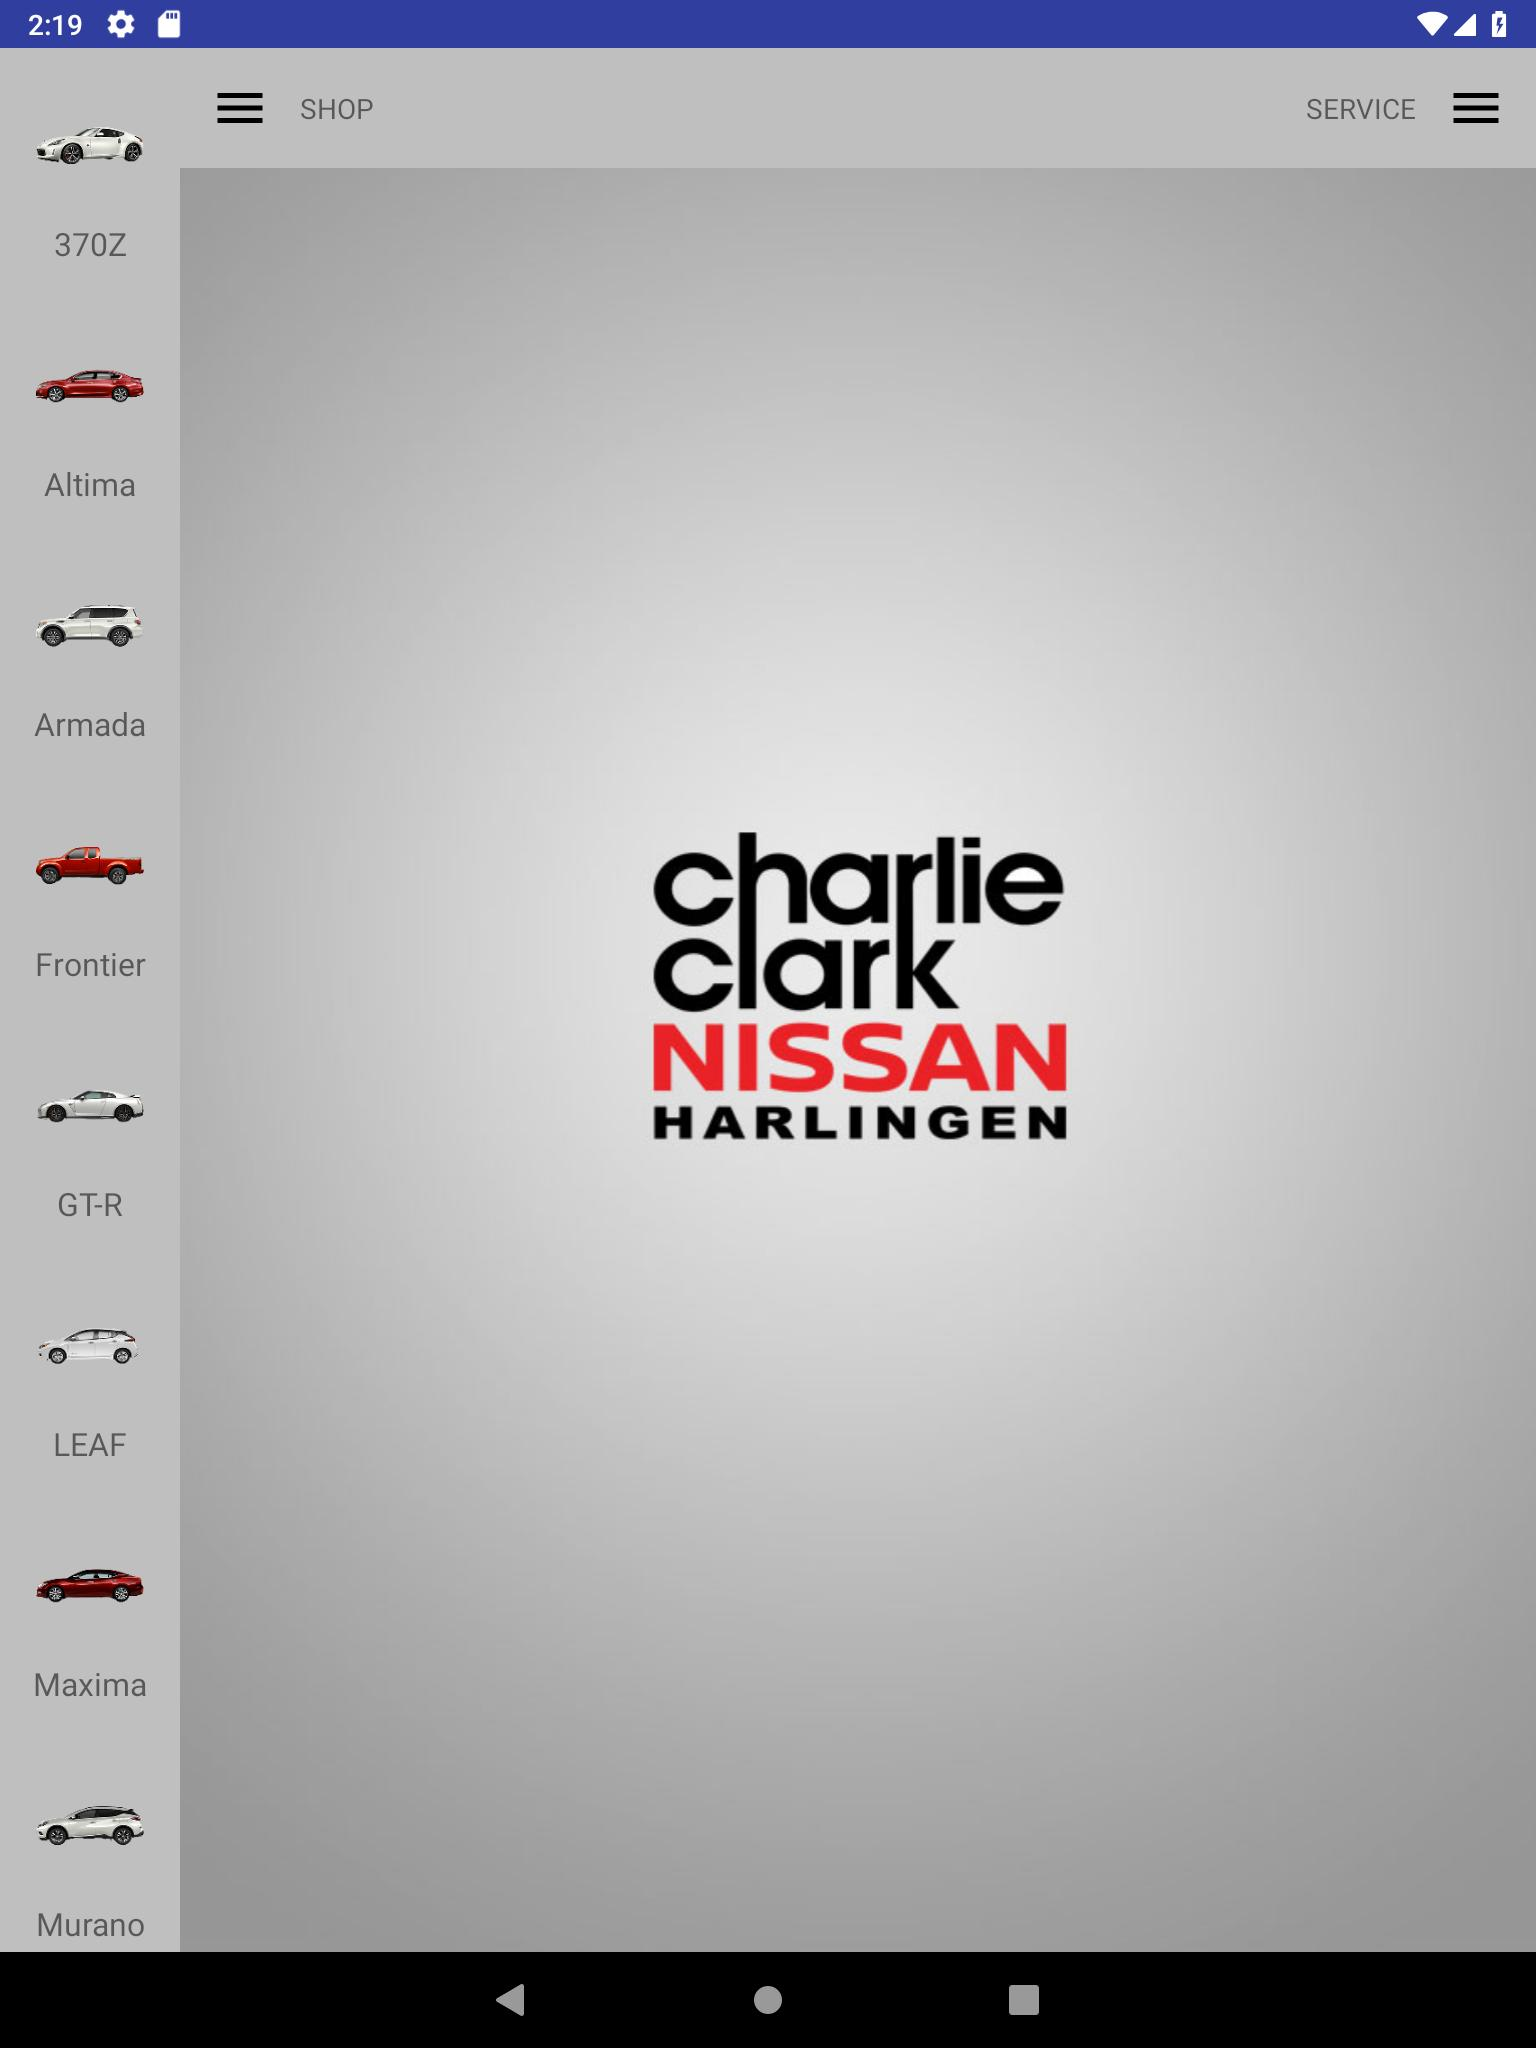 Charlie Clark Nissan Harlingen >> Charlie Clark Nissan Harlingen For Android Apk Download